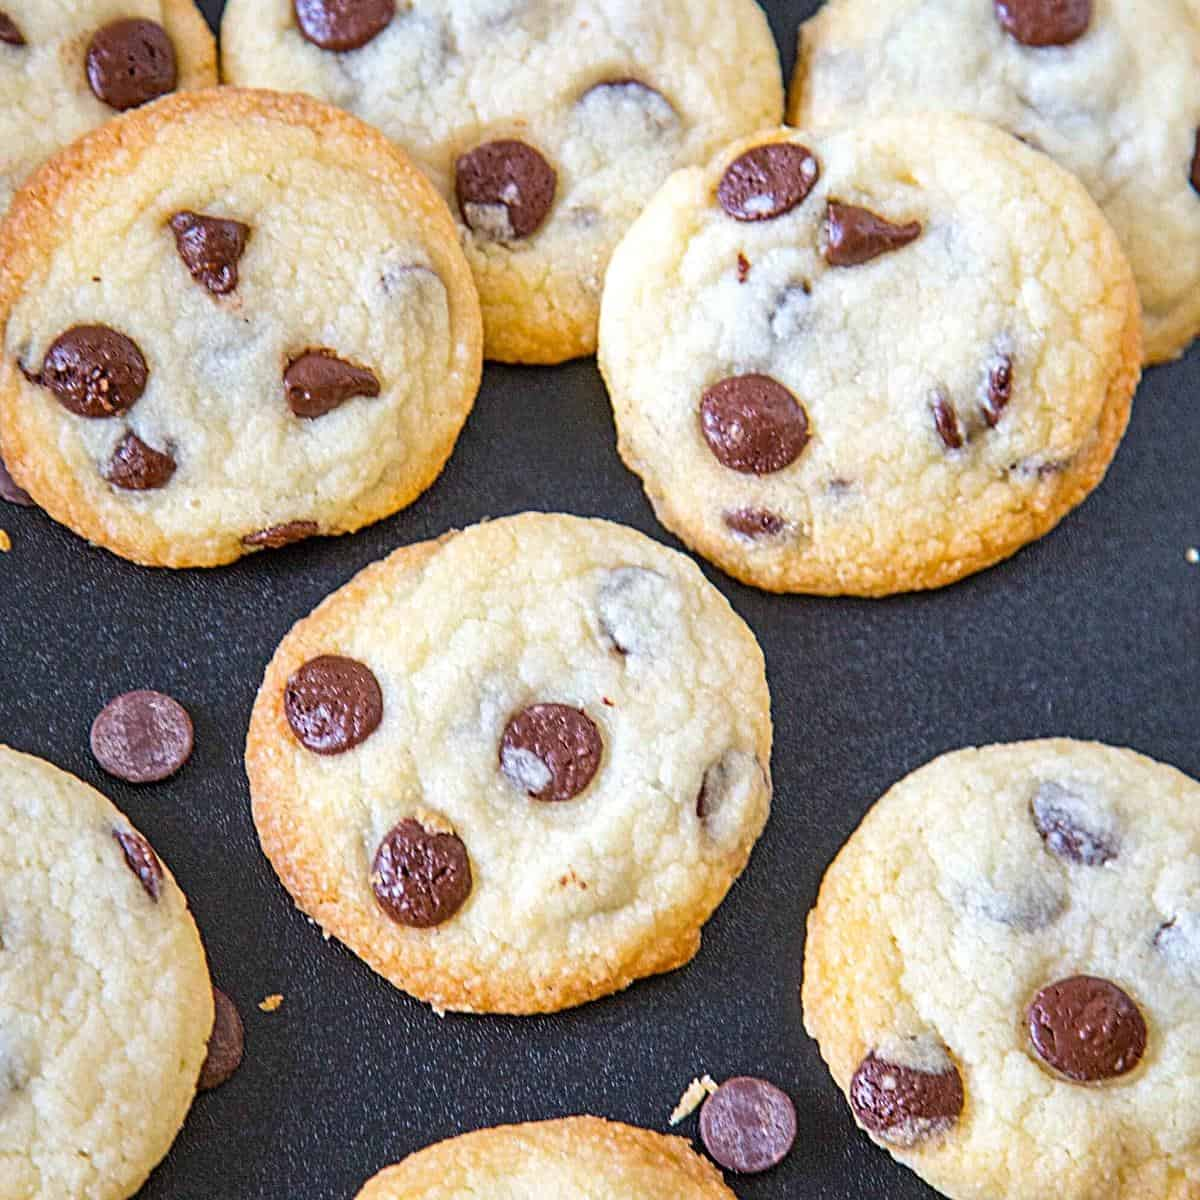 Eggless cookies with chocolate chips on a black board.